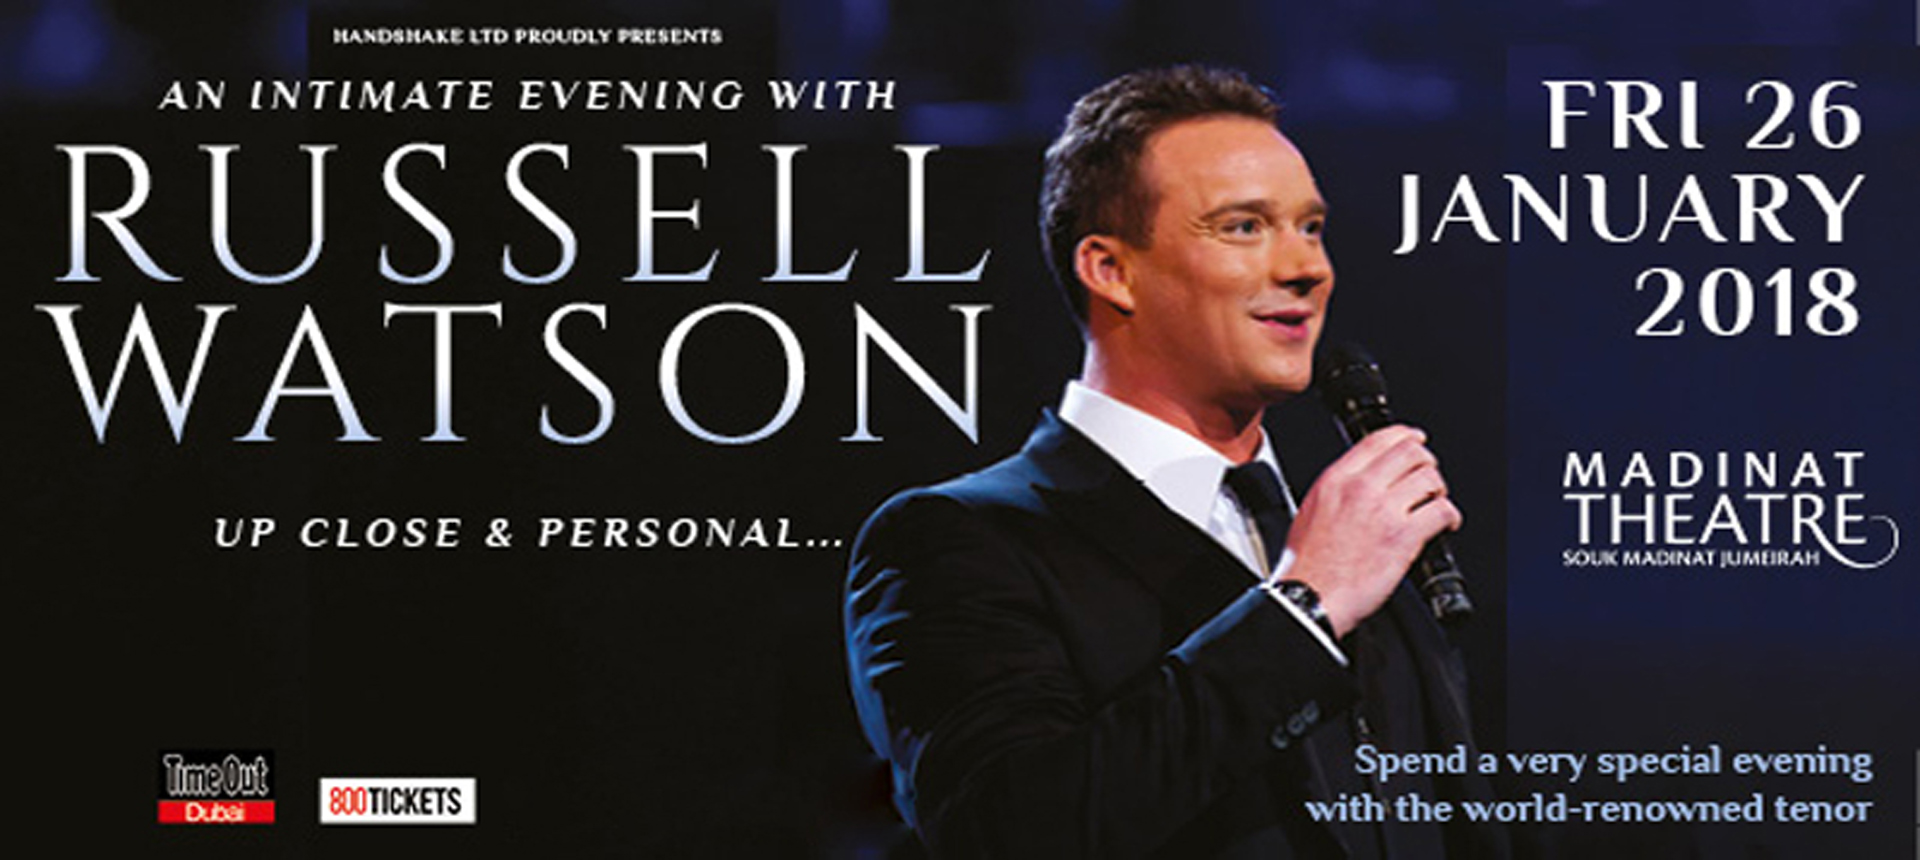 Russell Watson: Up Close and Personal